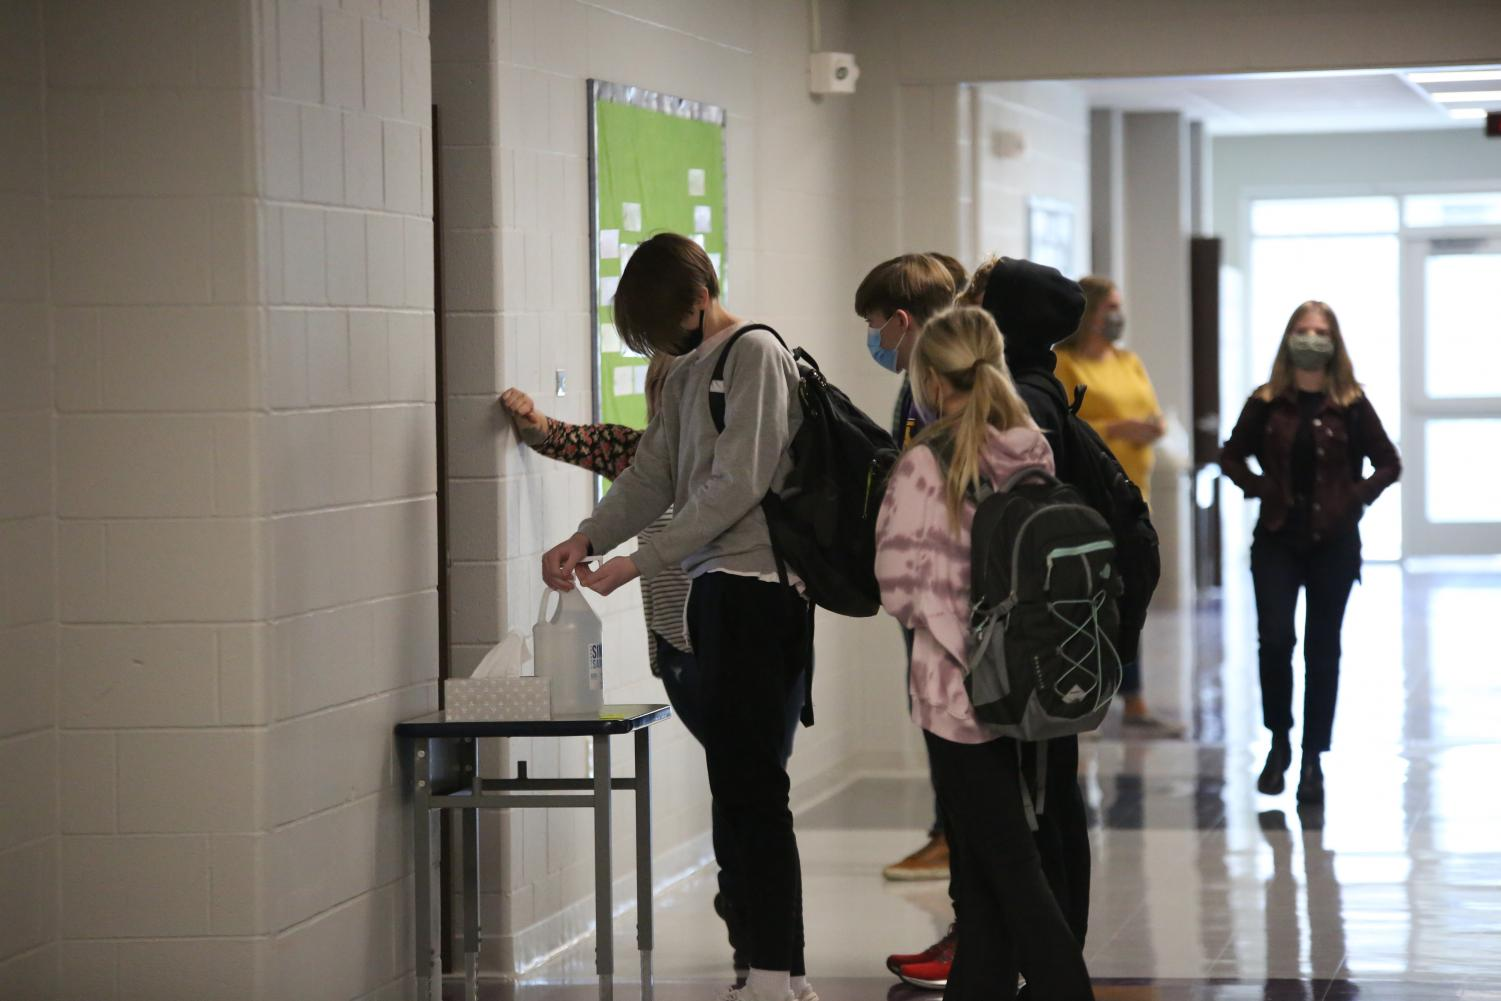 Students wear masks and use hand sanitizer before entering a class room, Nov 13.